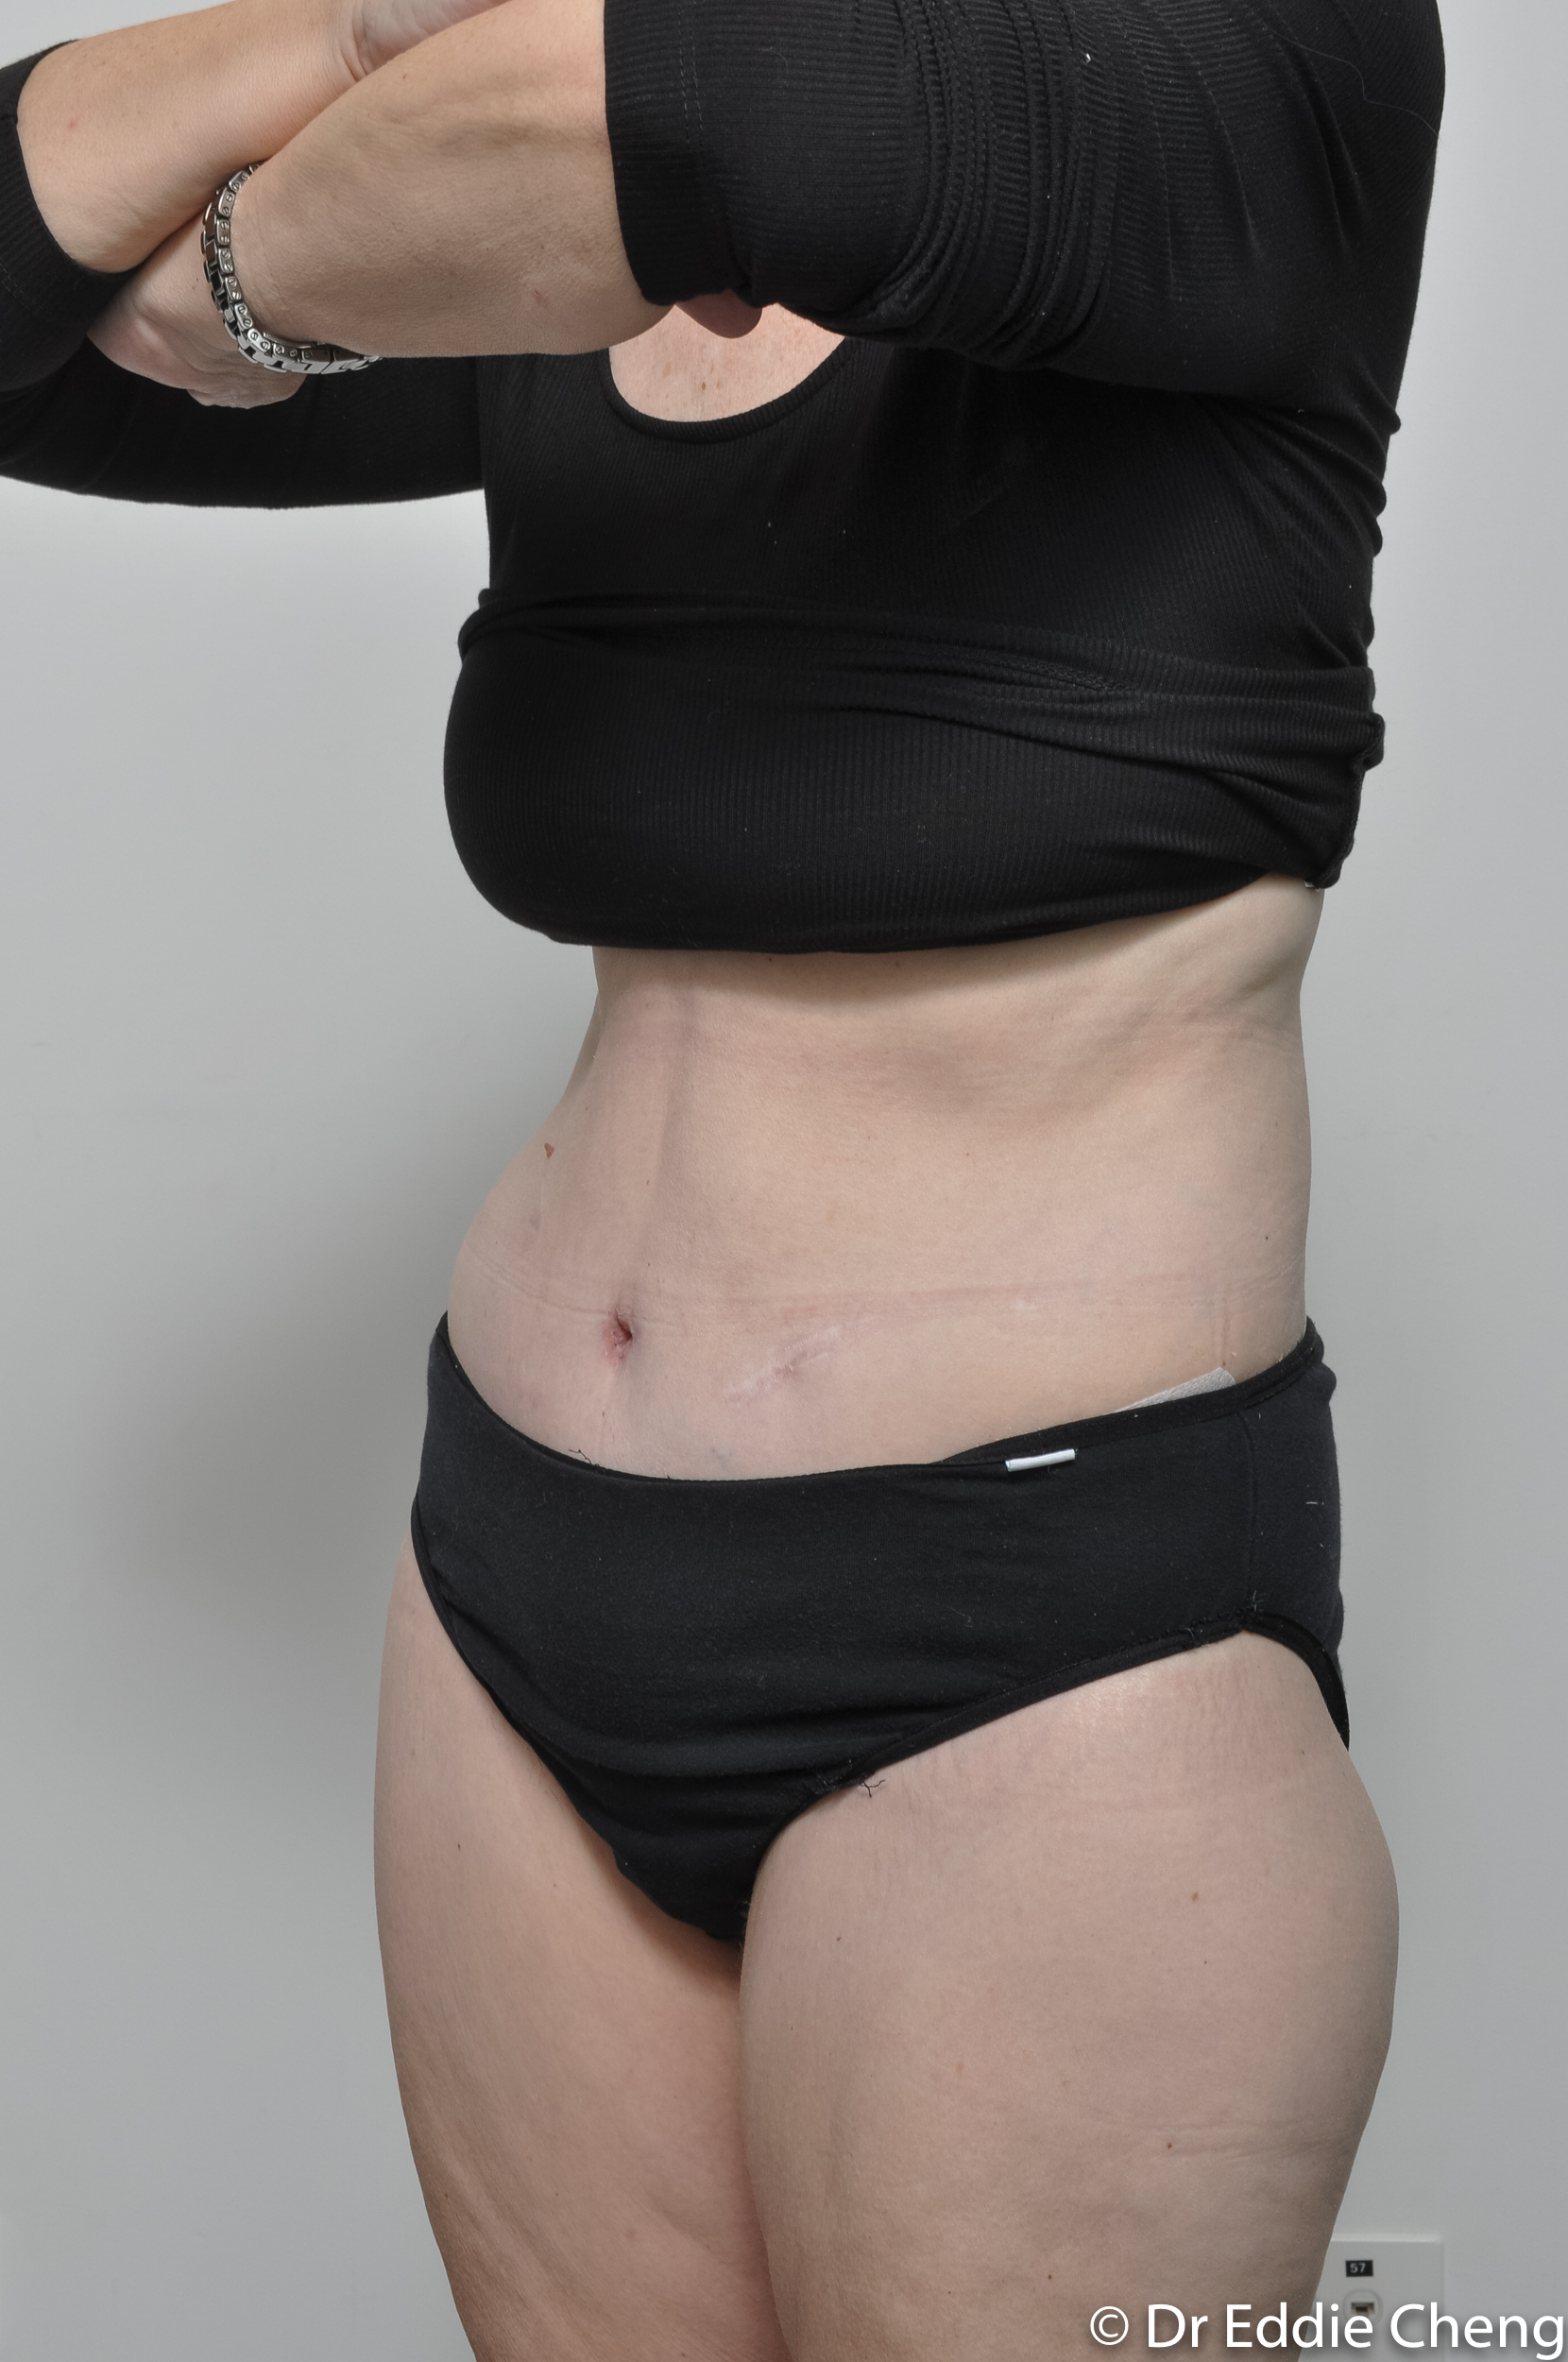 body lift brisbane dr eddie cheng weightloss pre and post op -8